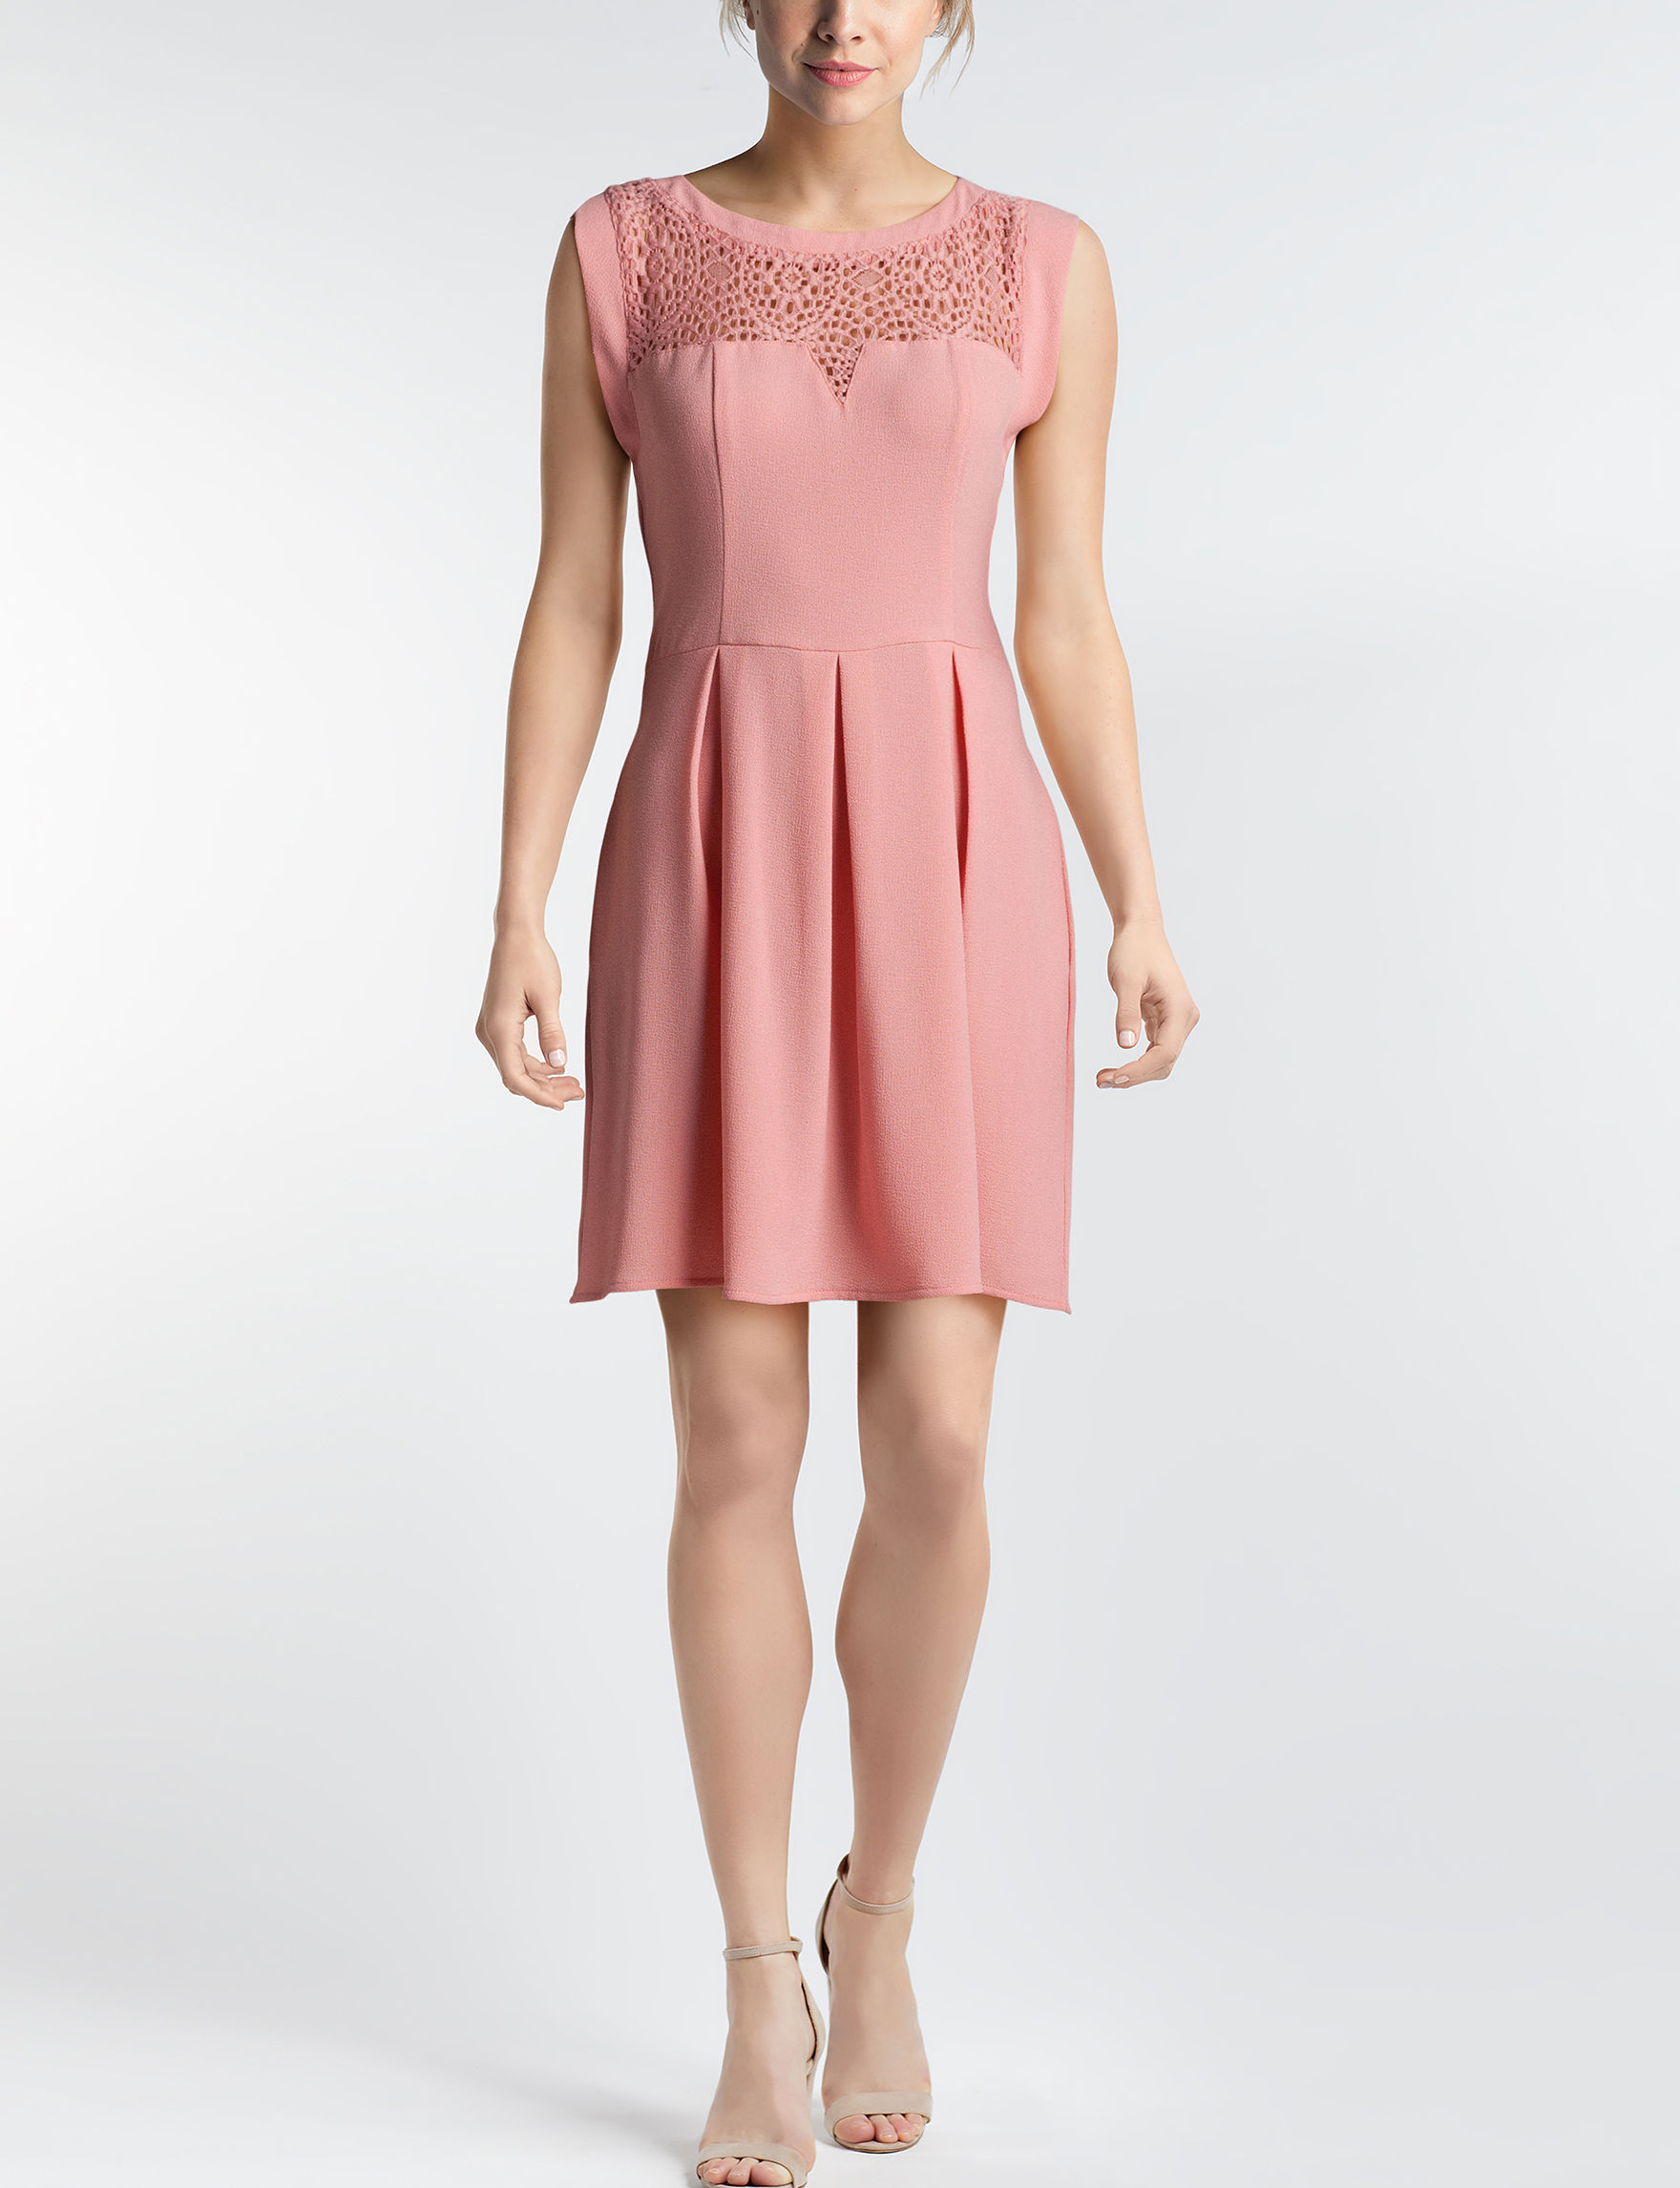 Speechless Blush Cocktail & Party Everyday & Casual Fit & Flare Dresses